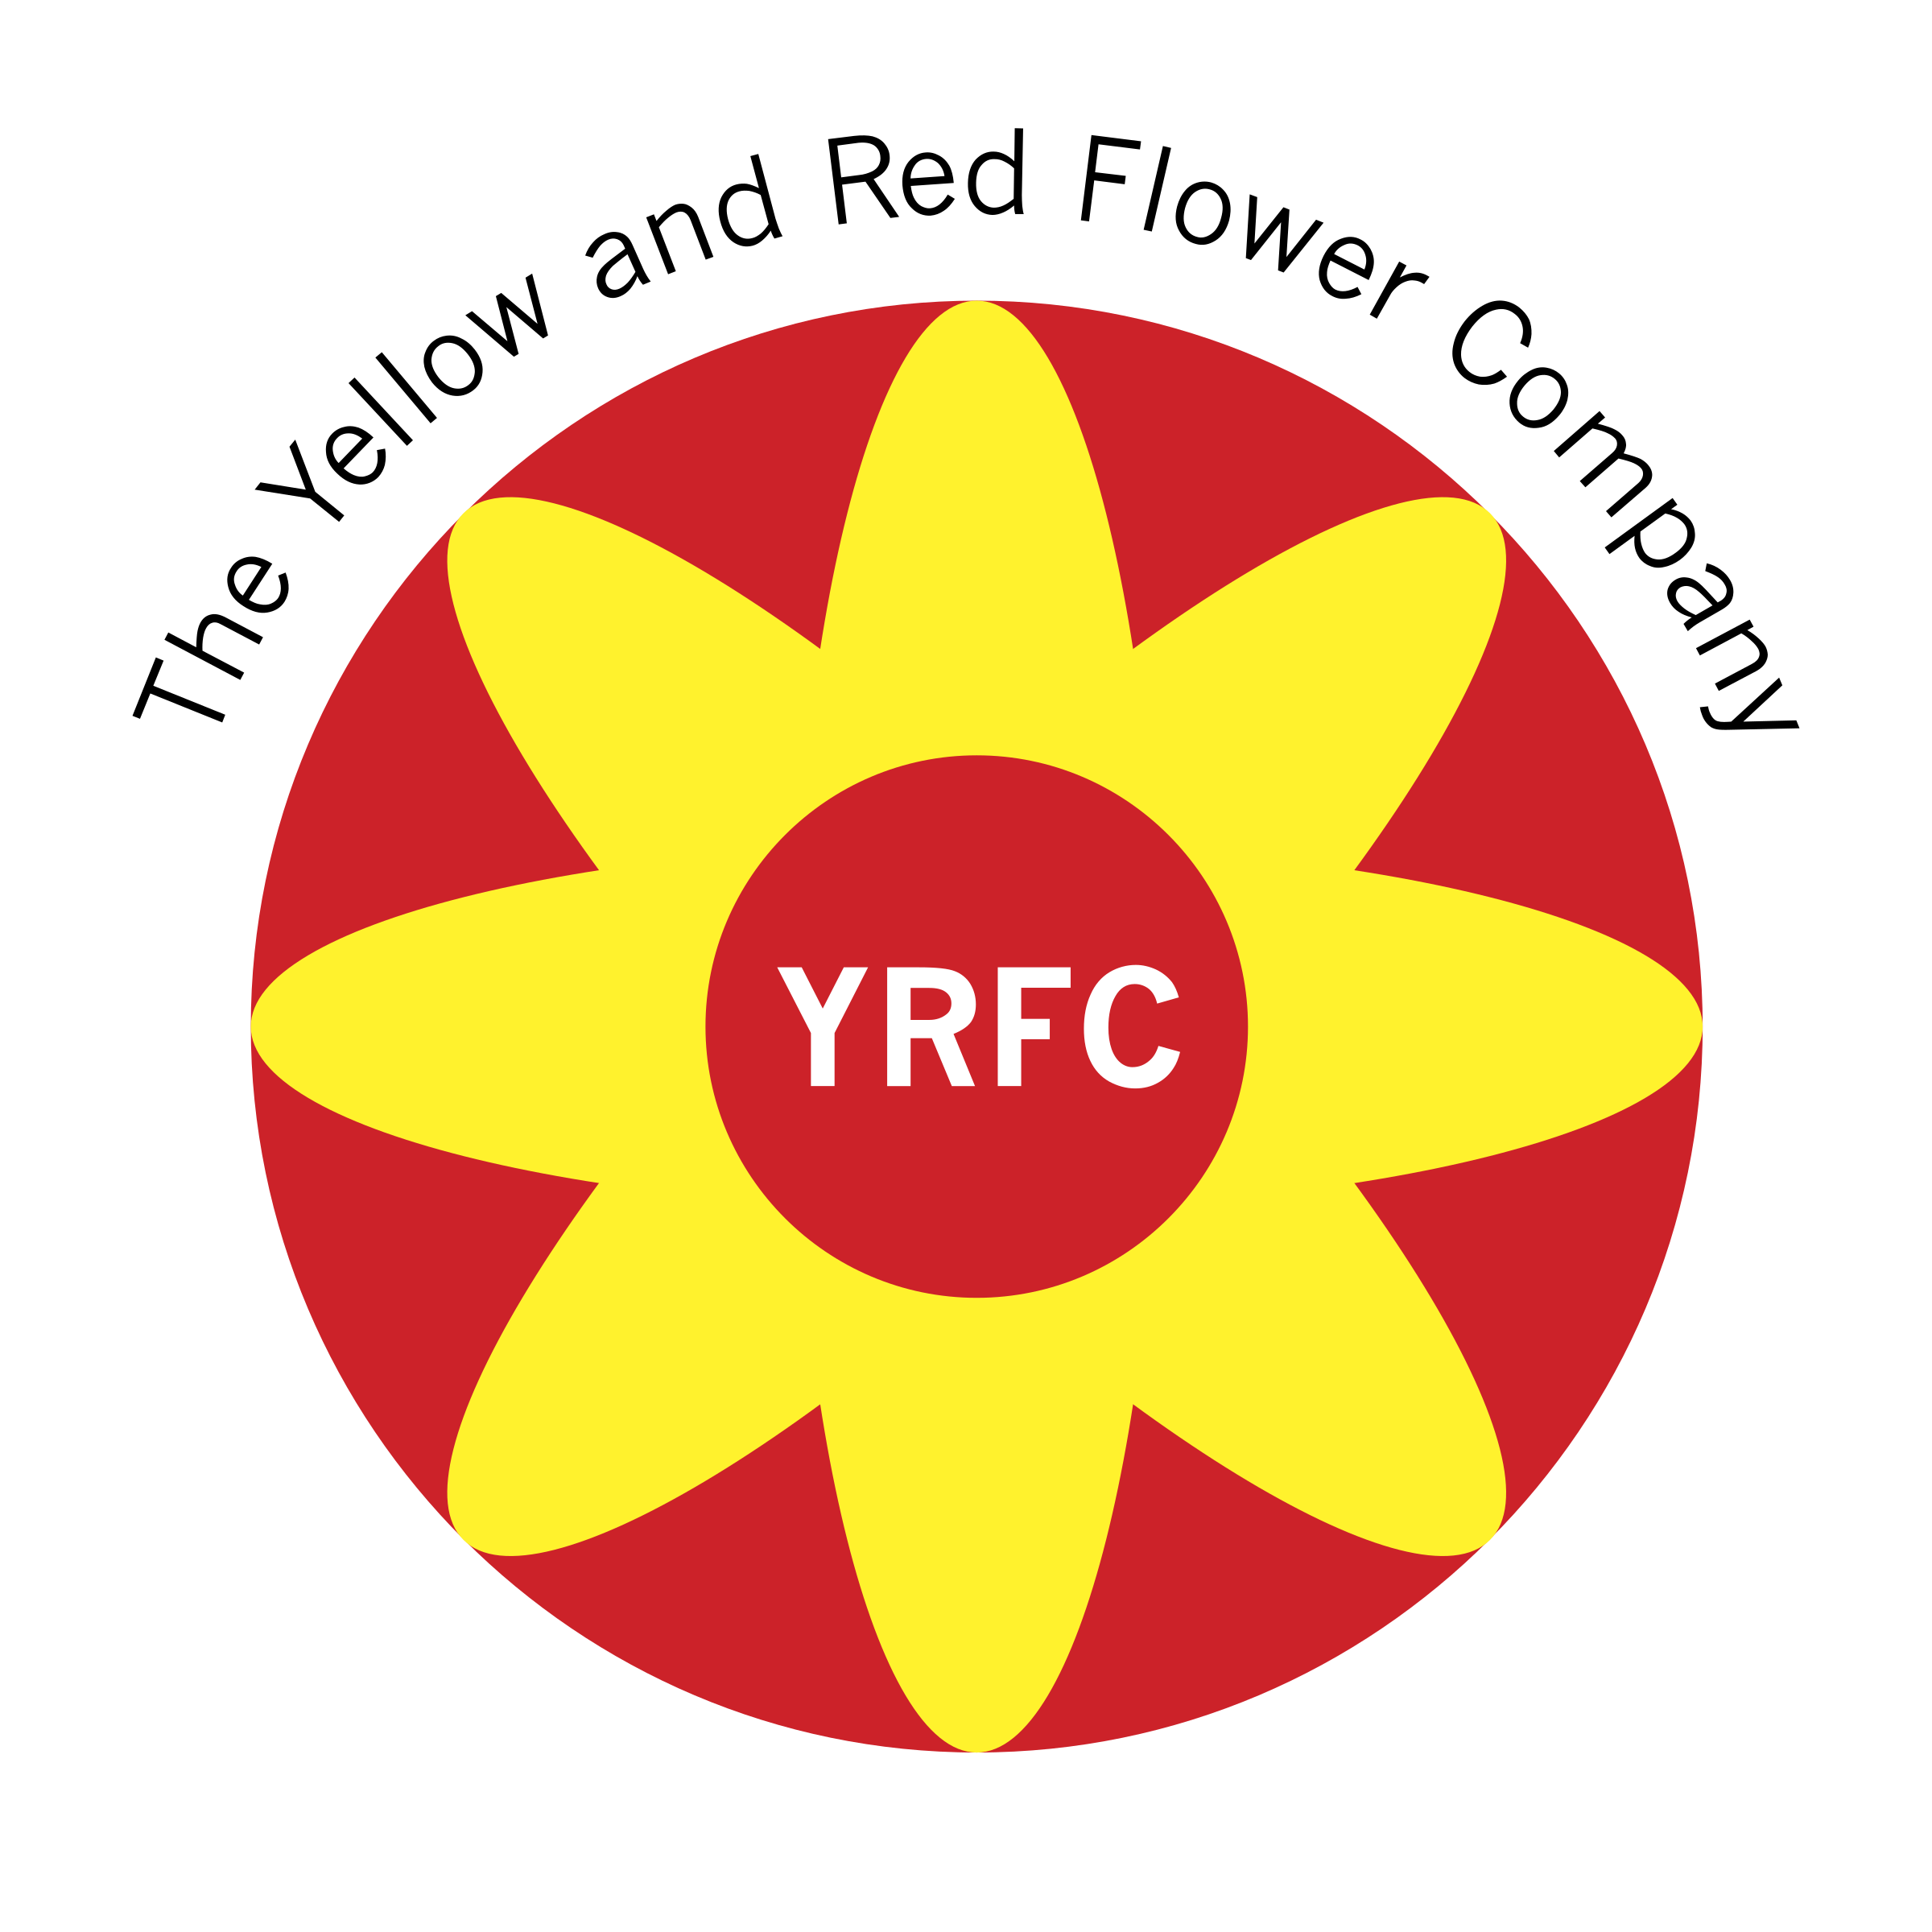 The Yellow And Red Flower Company Logo Png Transparent Svg Vector